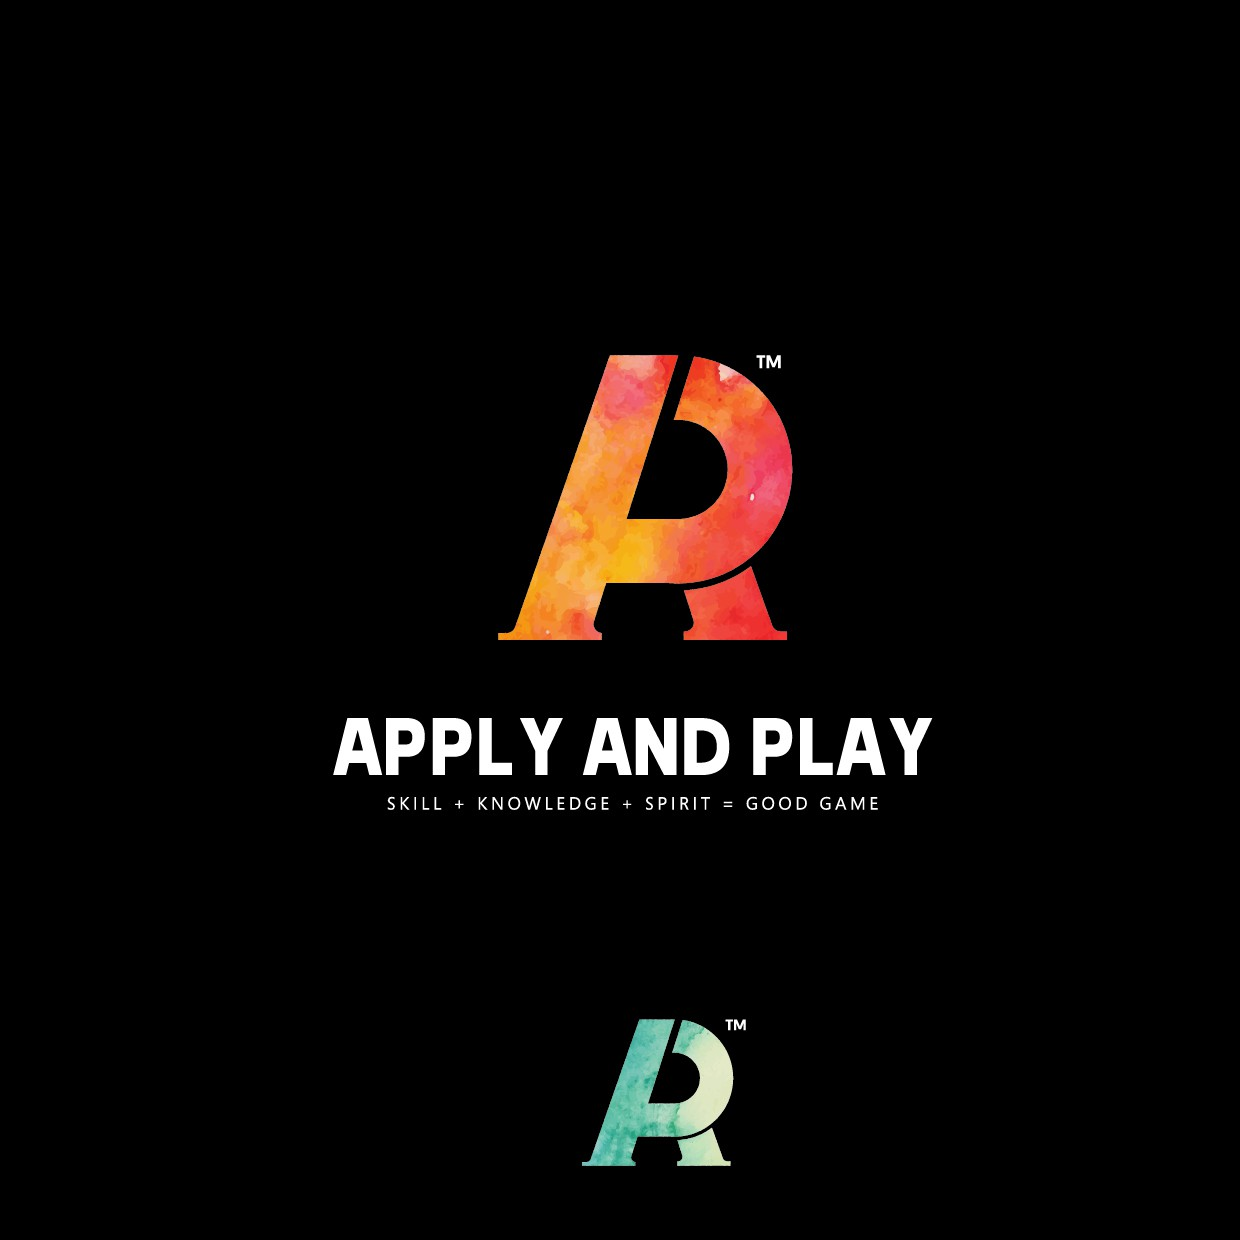 Apply and Play